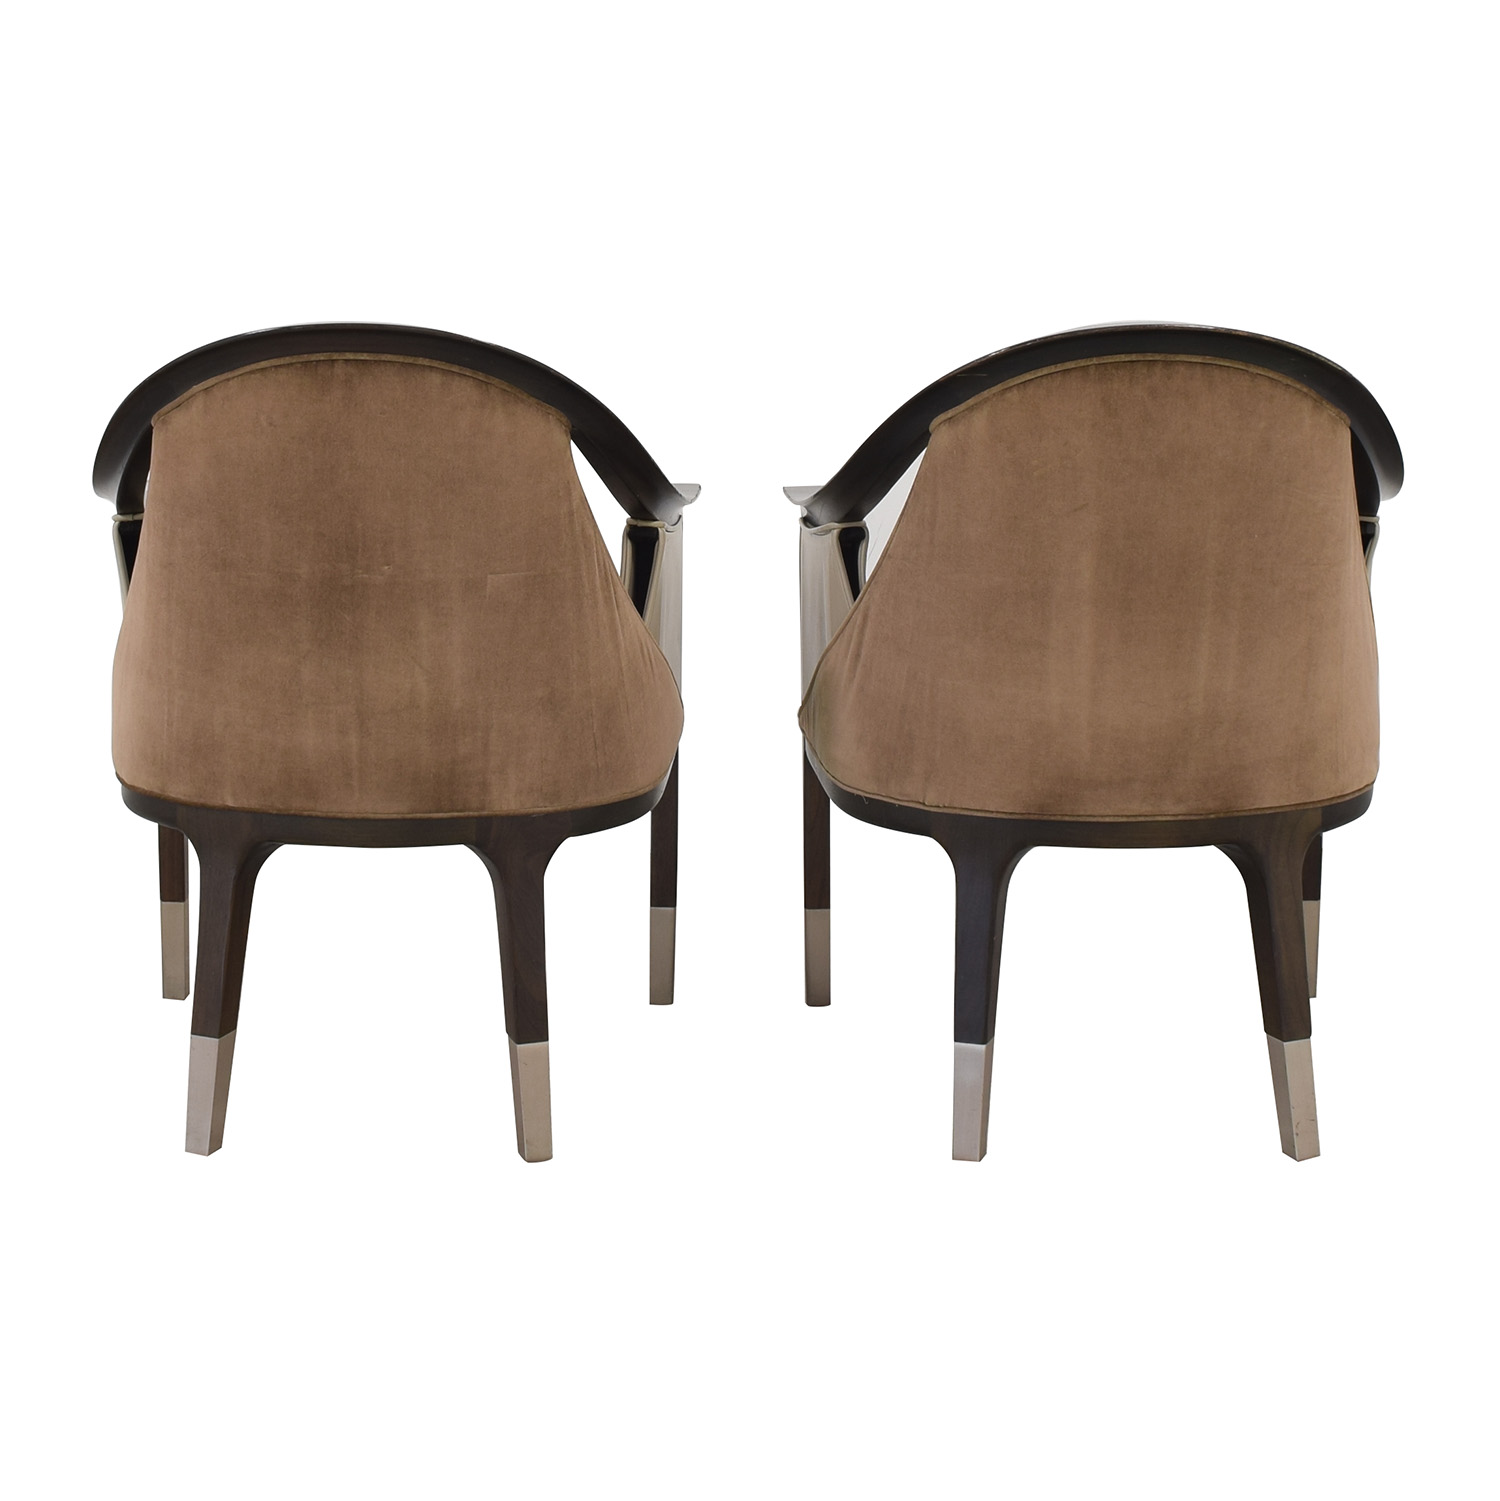 Allied Form Works Allied Works Eleven Madison Park Dining Room Chairs Dining Chairs